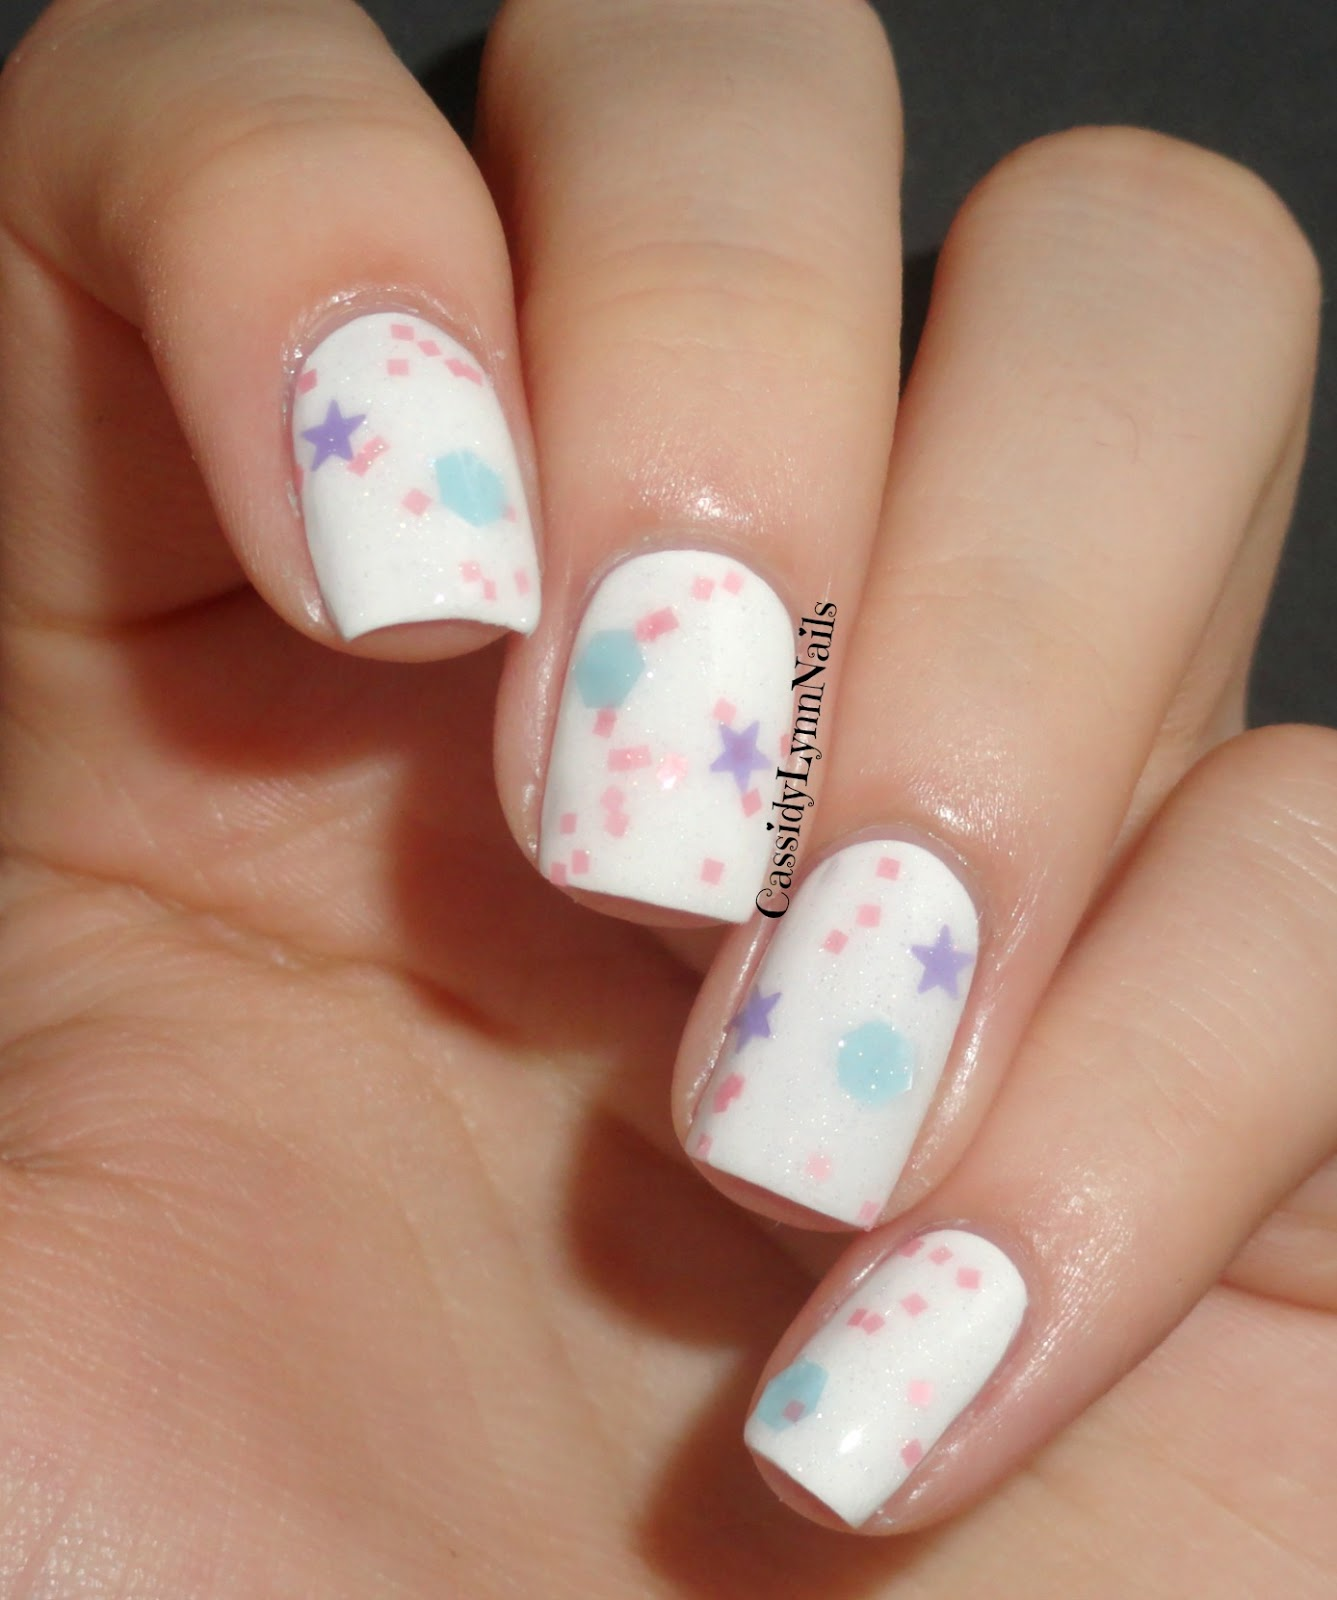 ♥ Wanderlust Lacquer Swatches and Reviews ♥ | Cassidy Lynn Nails